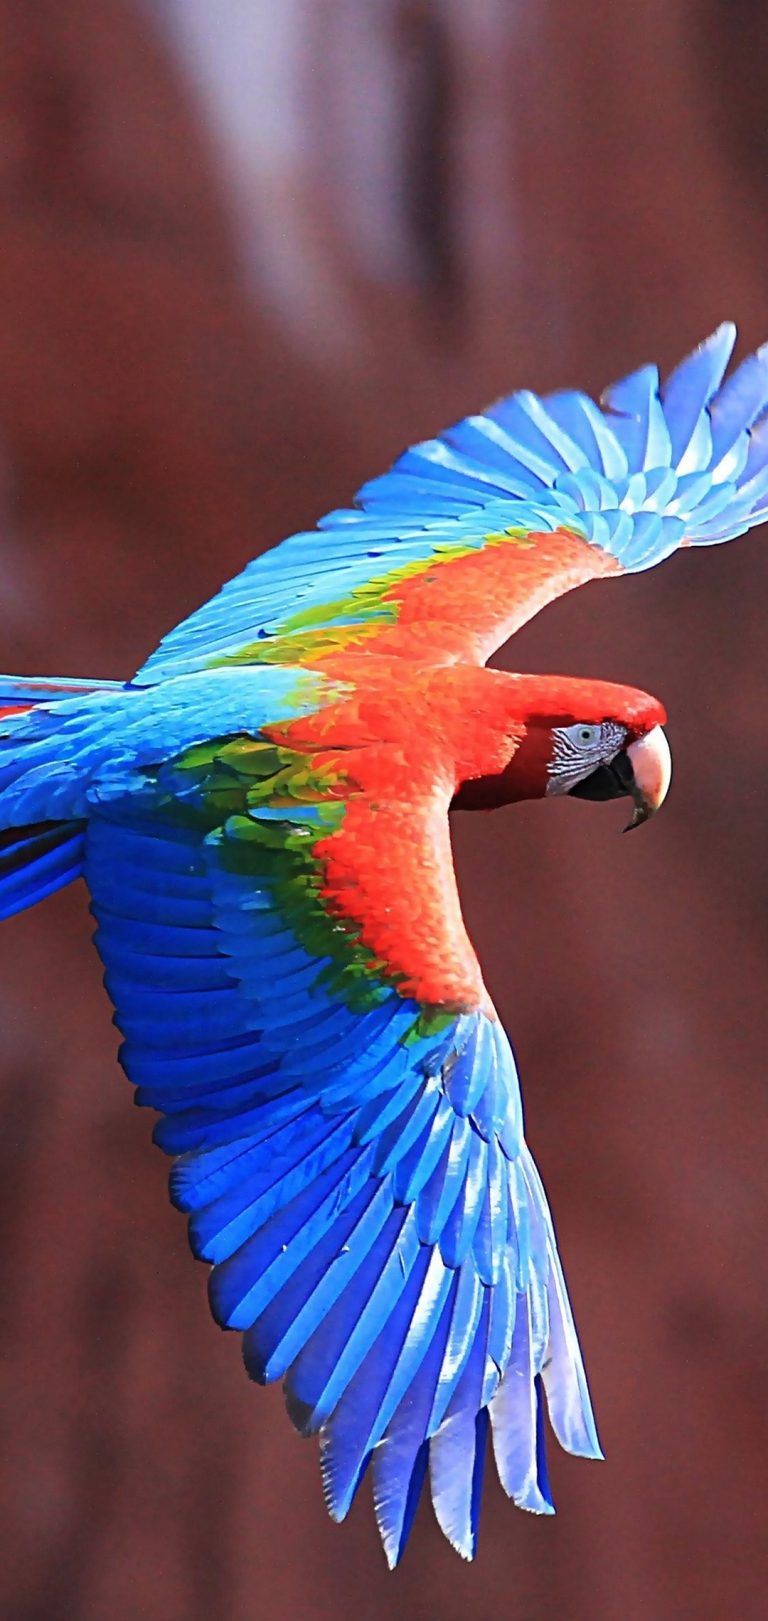 Red And Green Macaw Wallpaper 1080x2280 768x1621